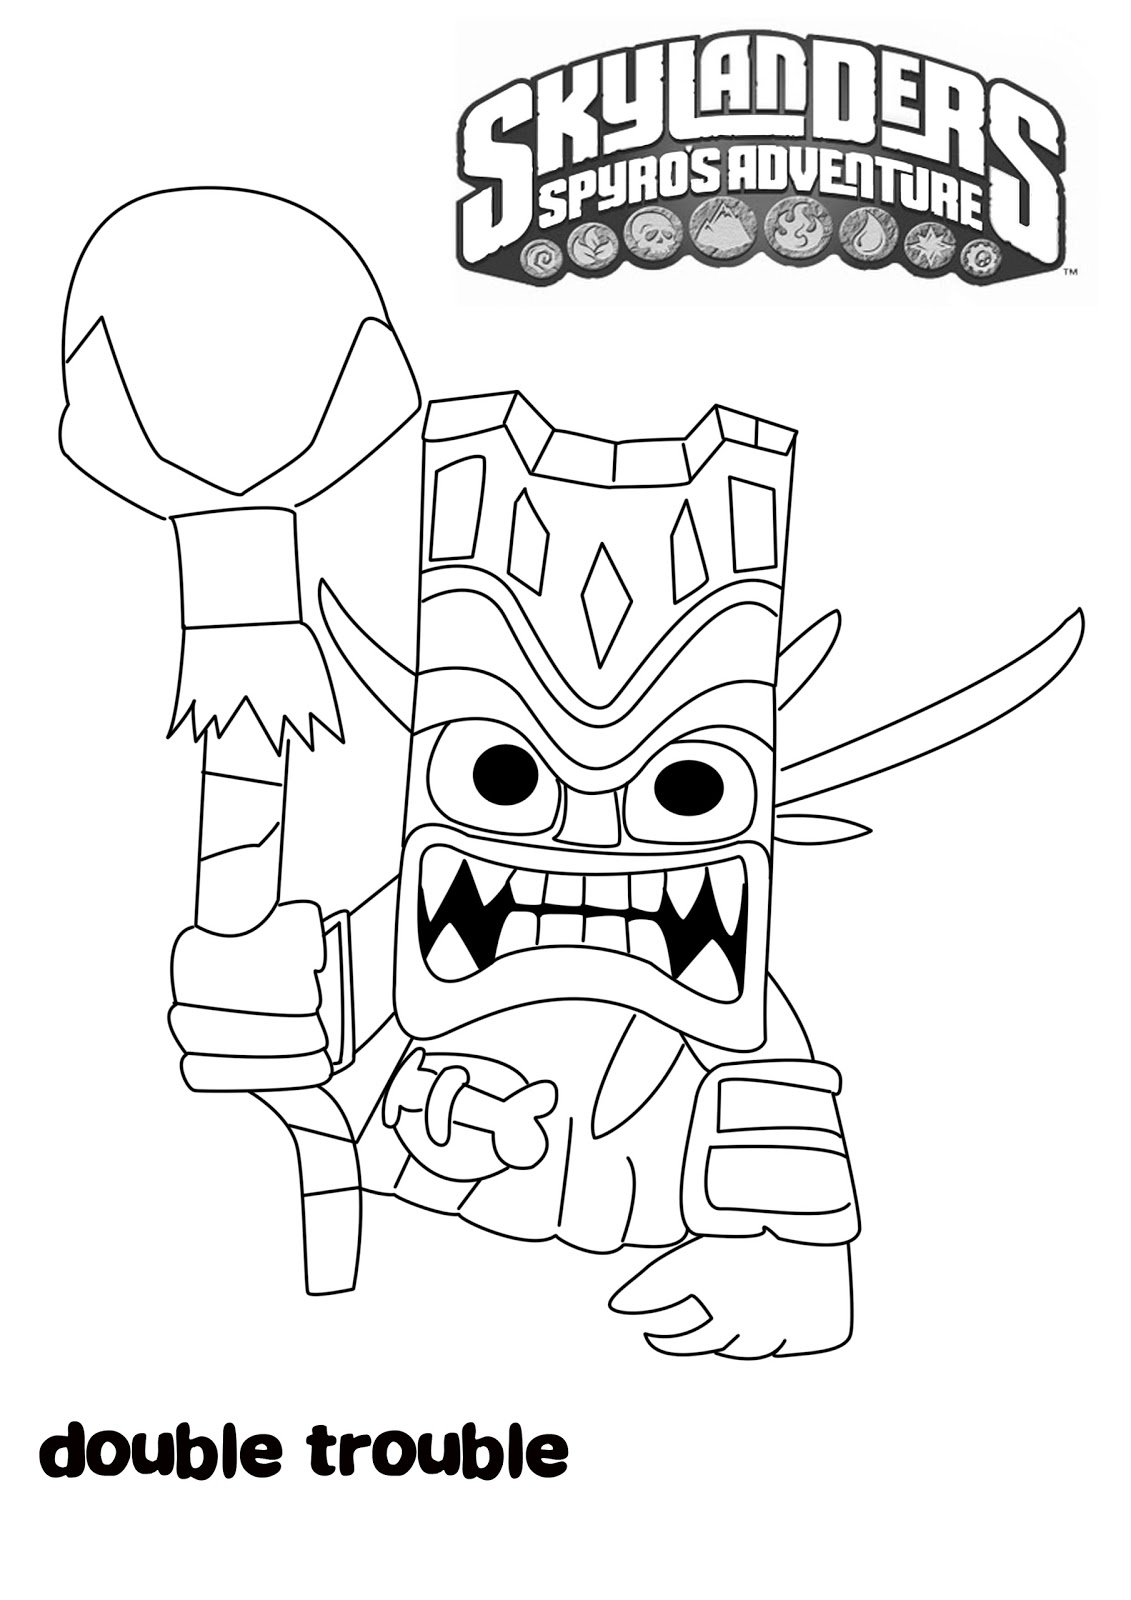 skylander wrecking ball coloring pages | Skylanders Wham Shell Coloring Pages Coloring Pages